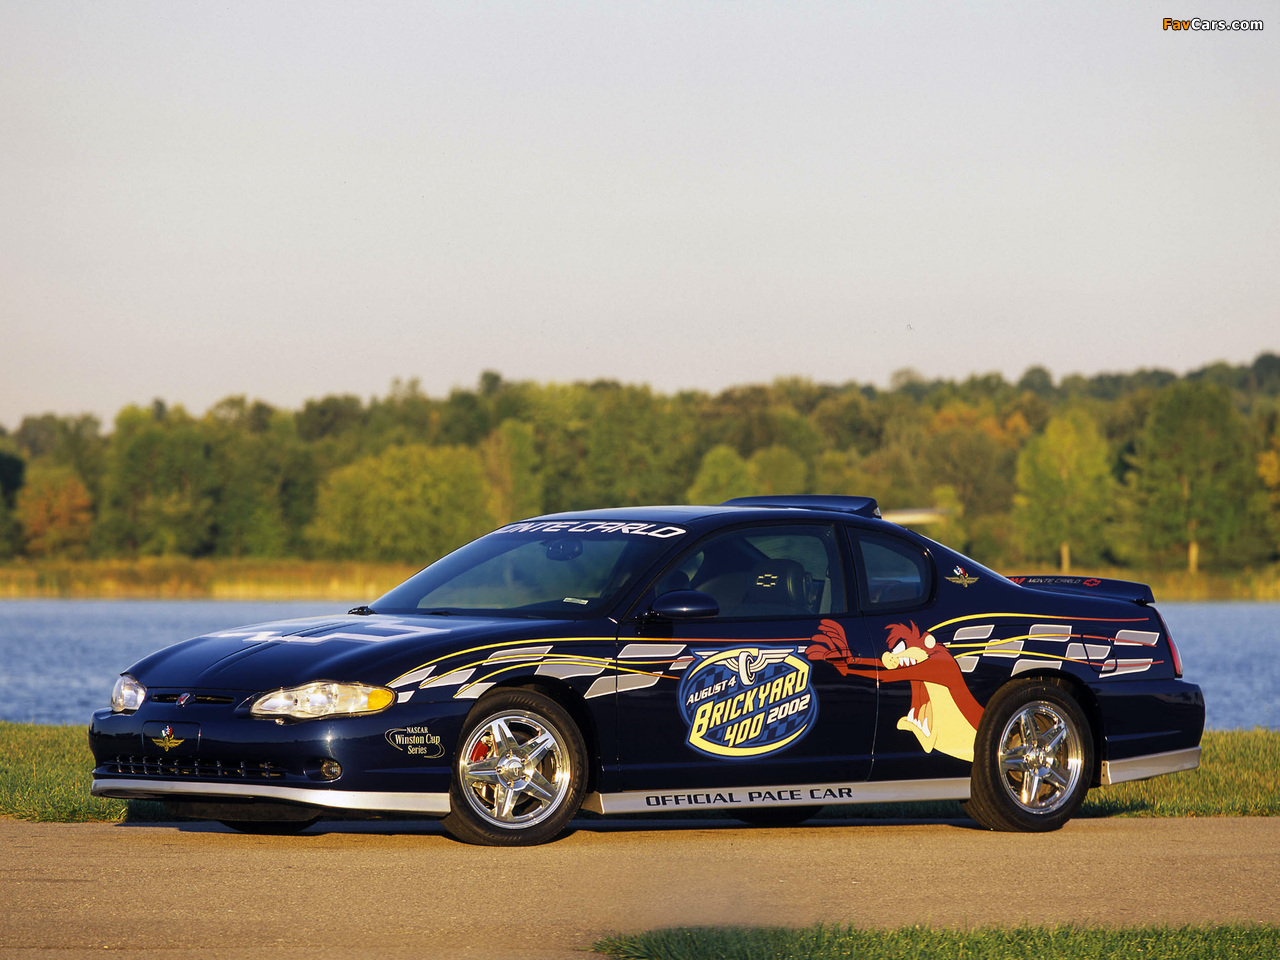 Chevrolet Monte Carlo Brickyard 400 Pace Car 2002 pictures (1280 x 960)